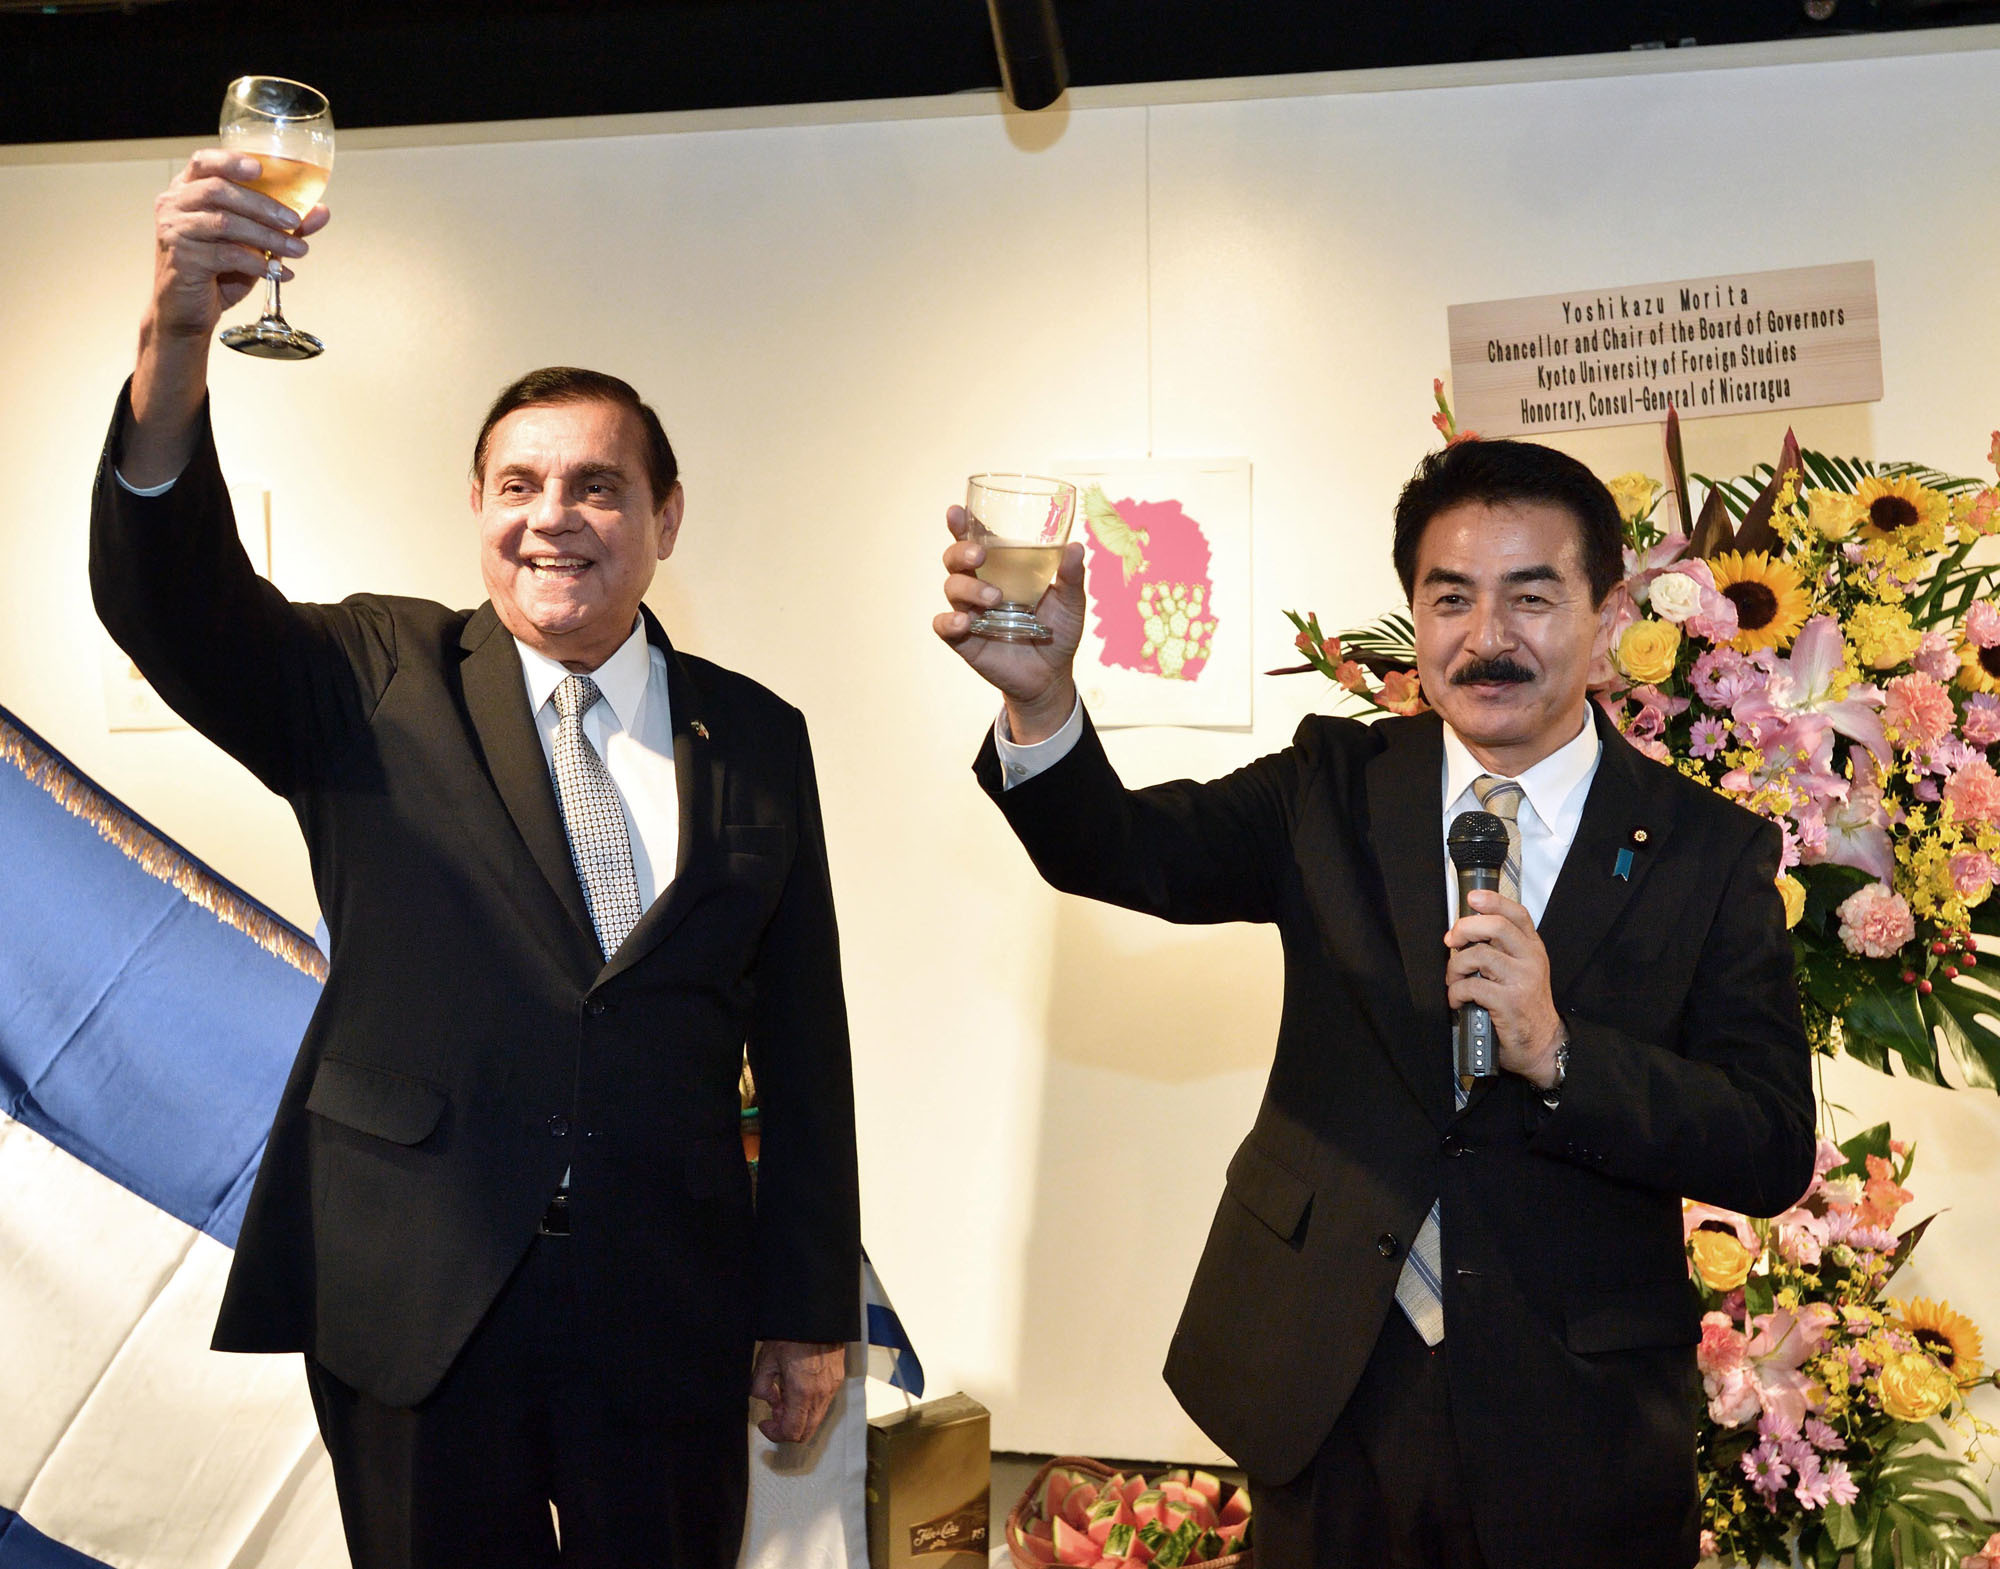 Nicaraguan Ambassador Saul Arana Castellon (left) leads a toast with Masahisa Sato, senior vice minister for foreign affairs, during a reception to celebrate Nicaragua's national day at Instituto Cervantes in Tokyo on Sept. 14. |  YOSHIAKI MIURA